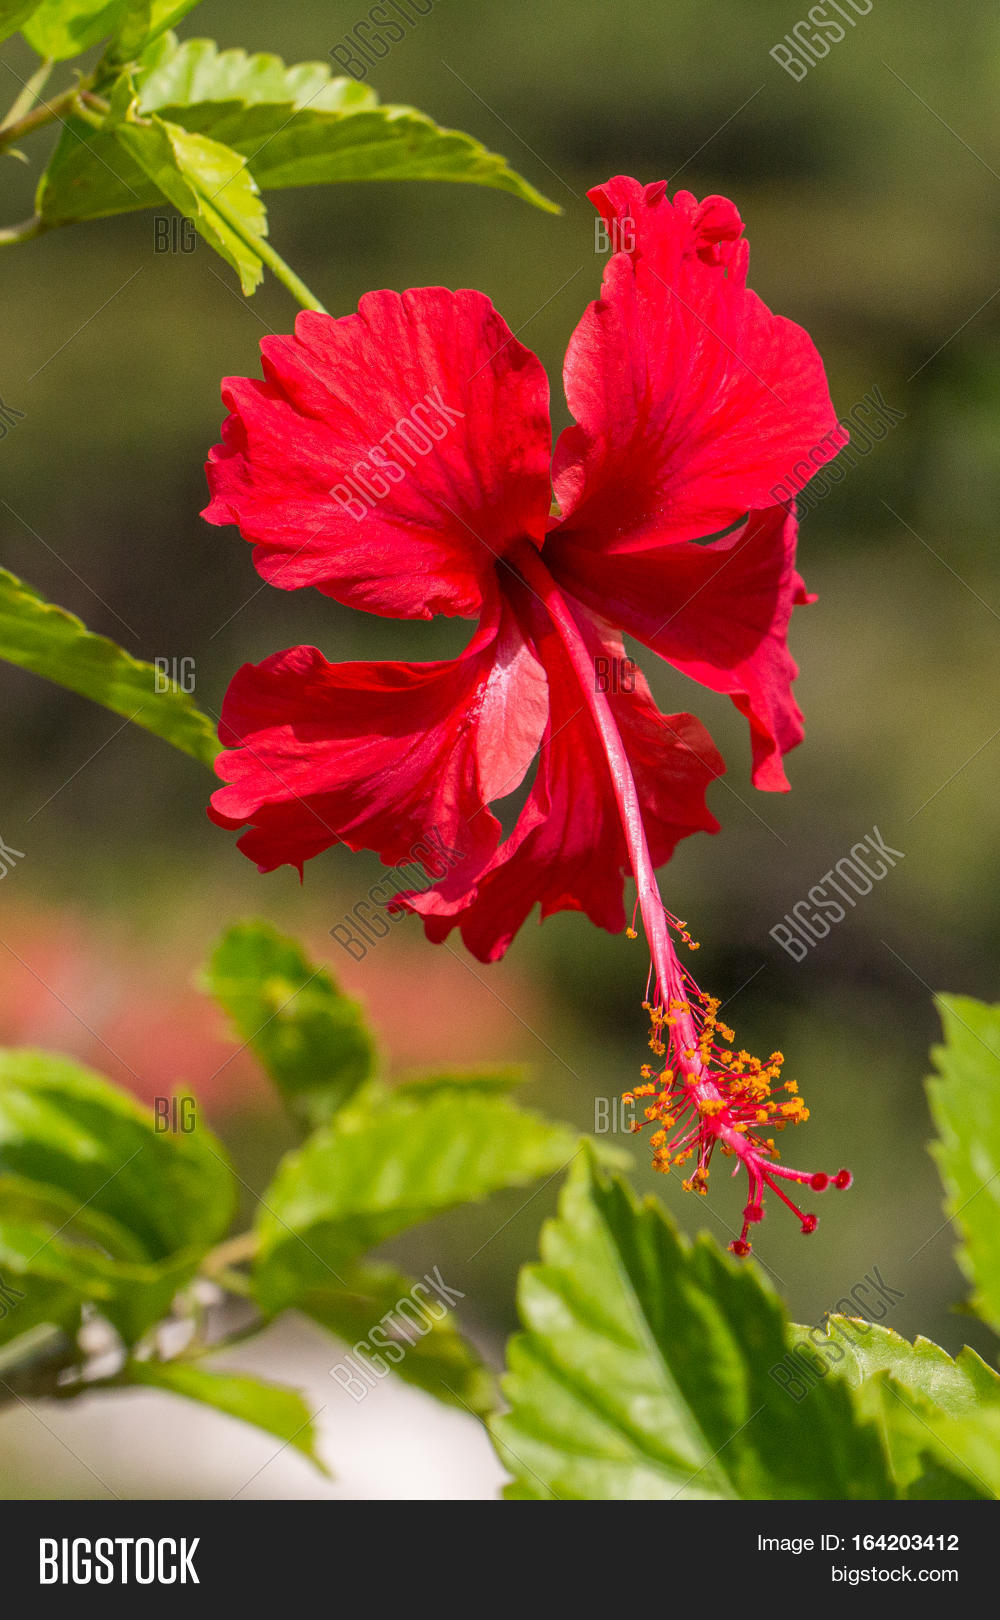 Red hibiscus flower image photo free trial bigstock a red hibiscus flowerhibiscus is malaysias national flower where its locally known as the izmirmasajfo